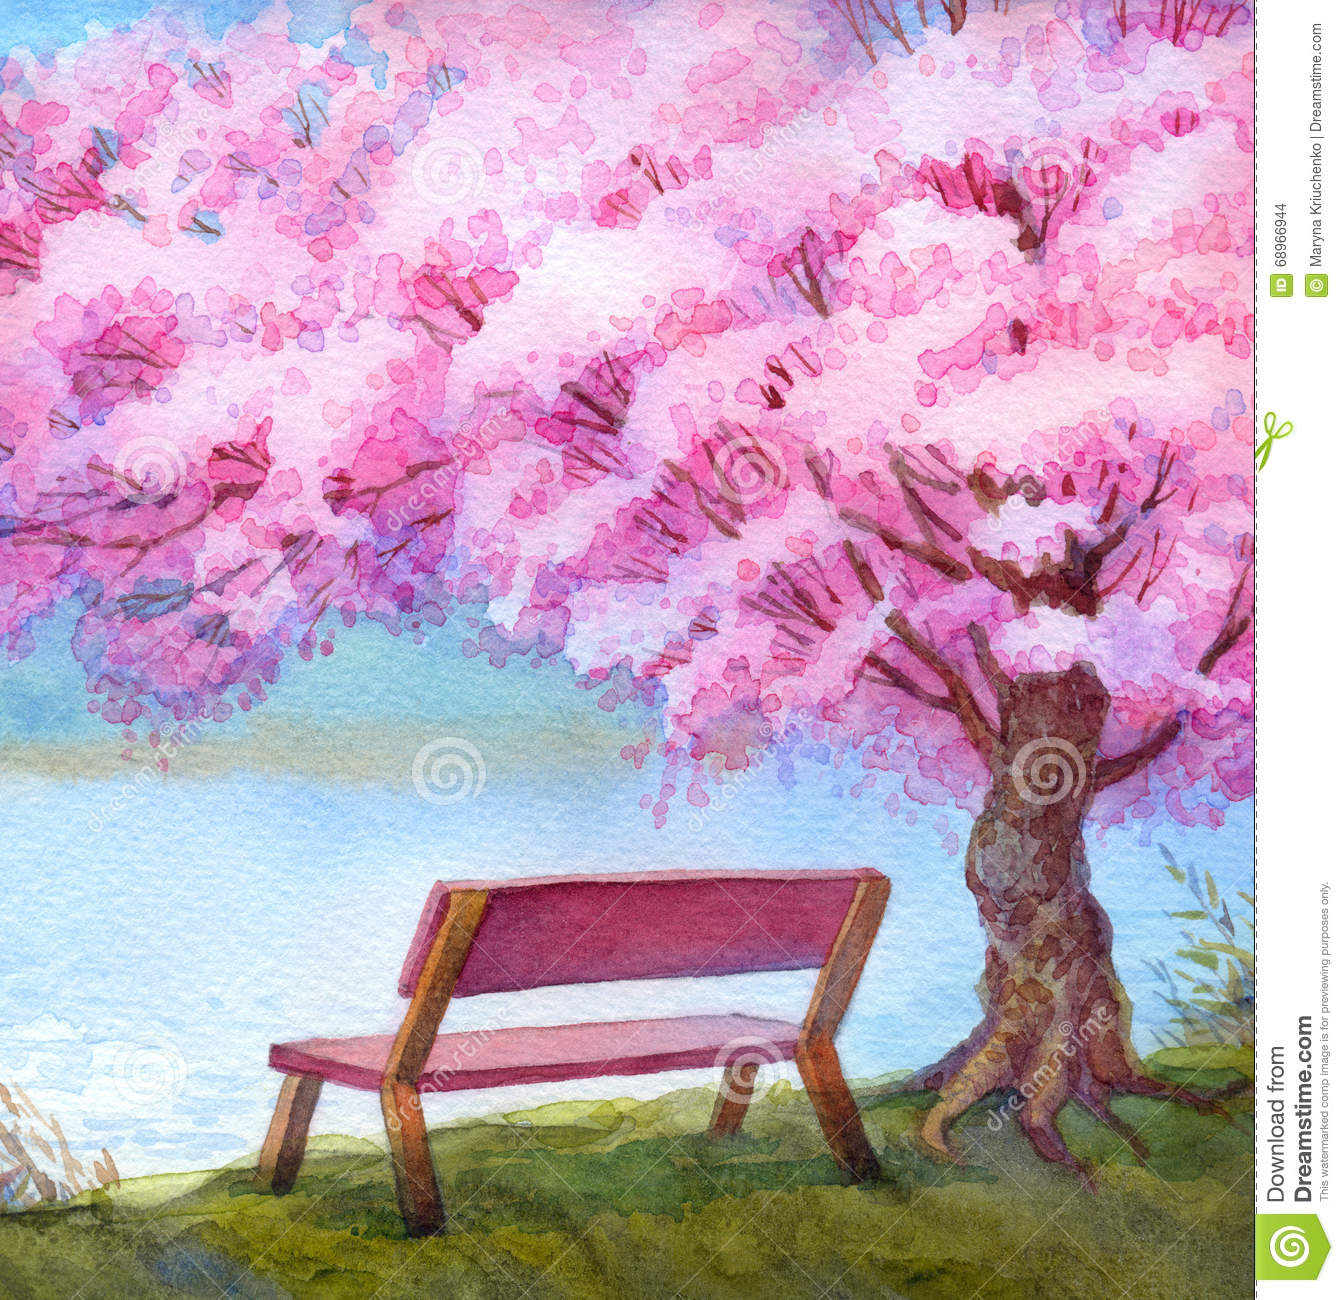 Watercolor Landscape Bench By River Under Flowering Peach